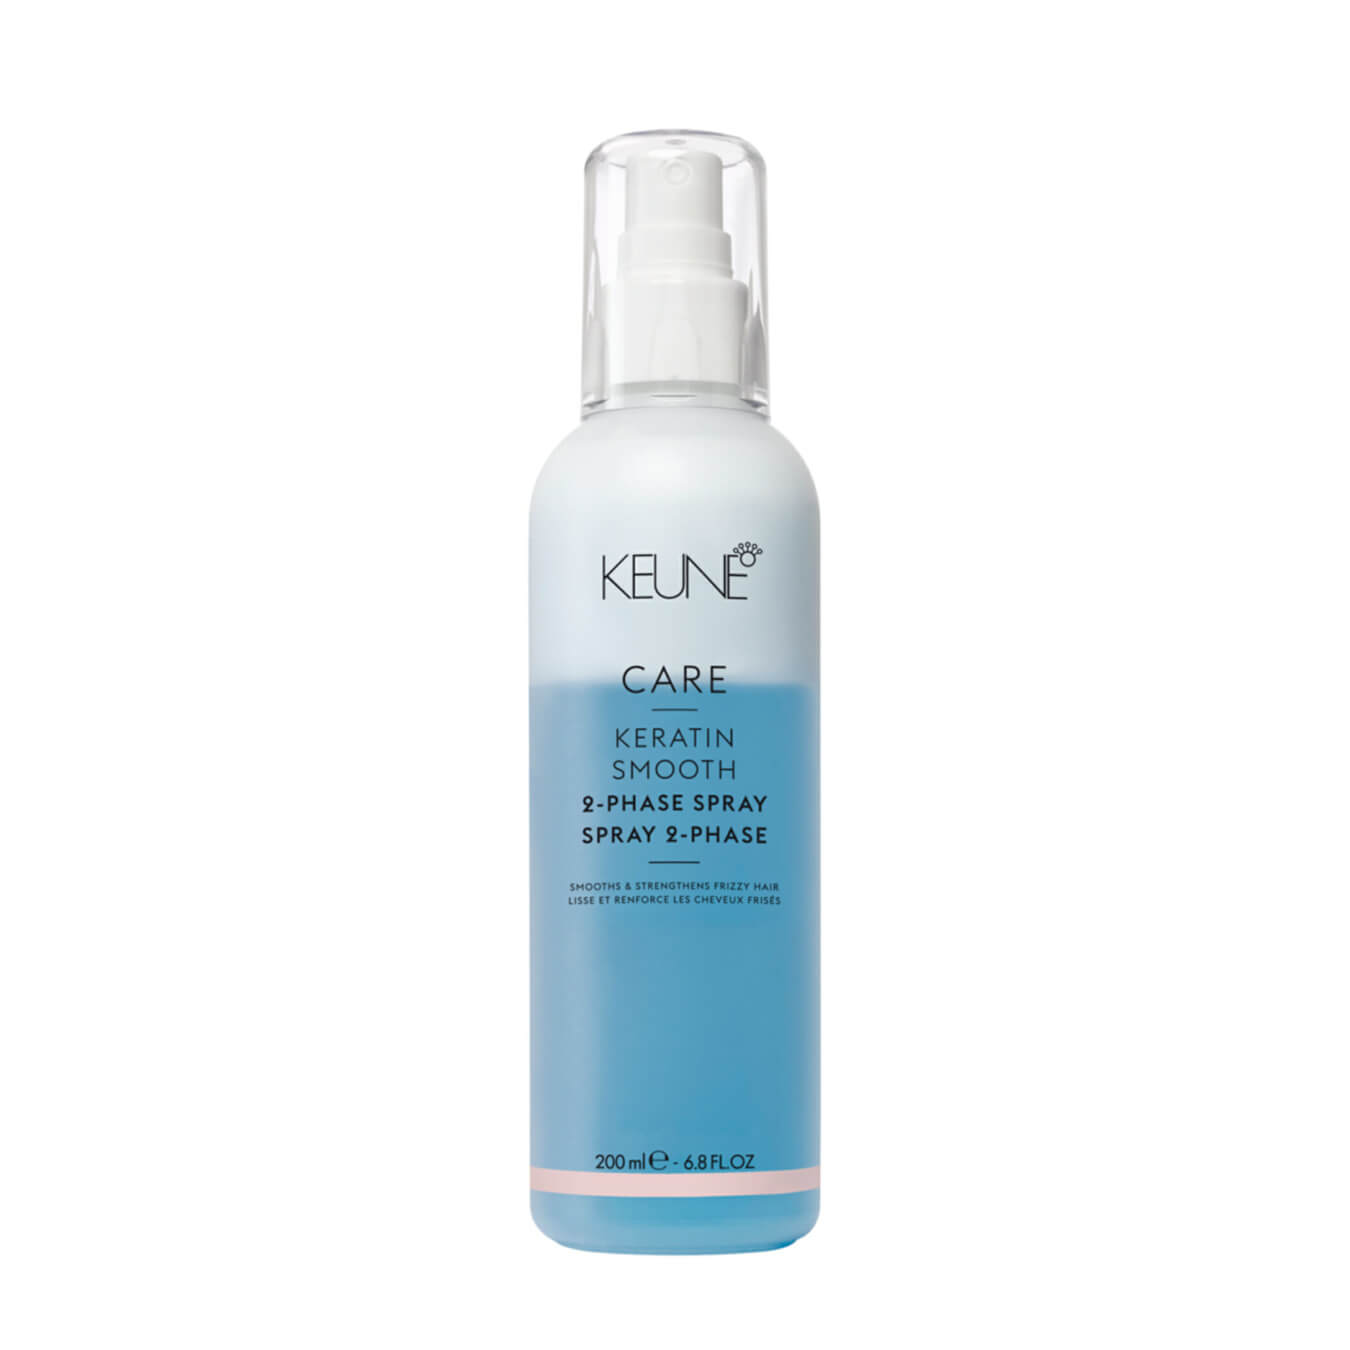 Koop Keune Care Keratin Smooth 2 Phase Spray 200ml